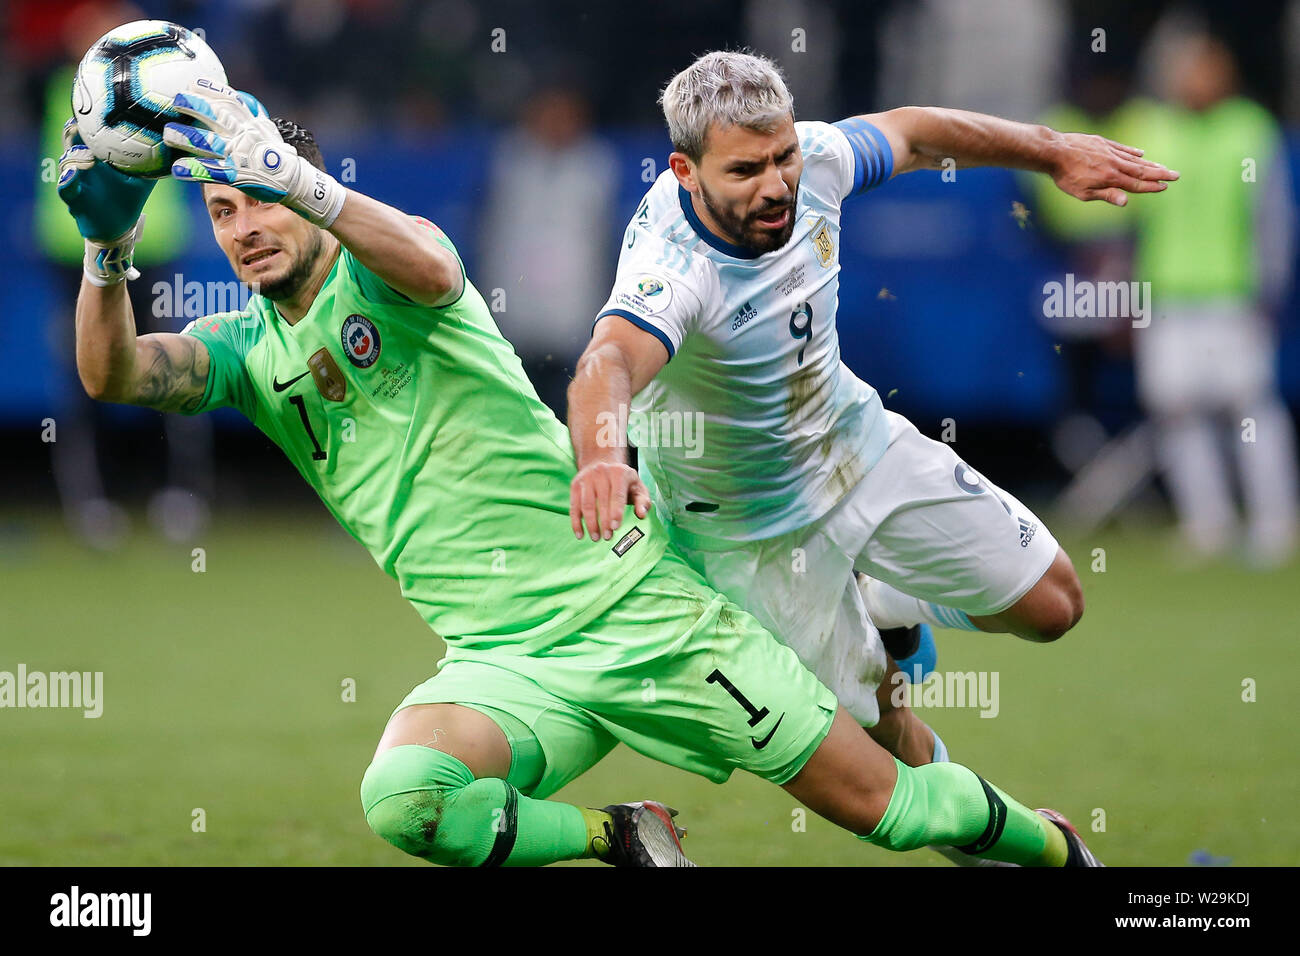 Sao Paulo, Brazil . 06th July, 2019. SÃO PAULO, SP - 06.07.2019: ARGENTINA VS. CHILE - Gabriel Arias of Chile plays the ball with Sergio Kun Aguero of Argentina during a match between Argentina and Chile, valid for the third place match of the Copa América 2019, held this Saturday (06) at the Corinthians Arena in São Paulo, SP. (Photo: Marcelo Machado de Melo/Fotoarena) Credit: Foto Arena LTDA/Alamy Live News - Stock Image